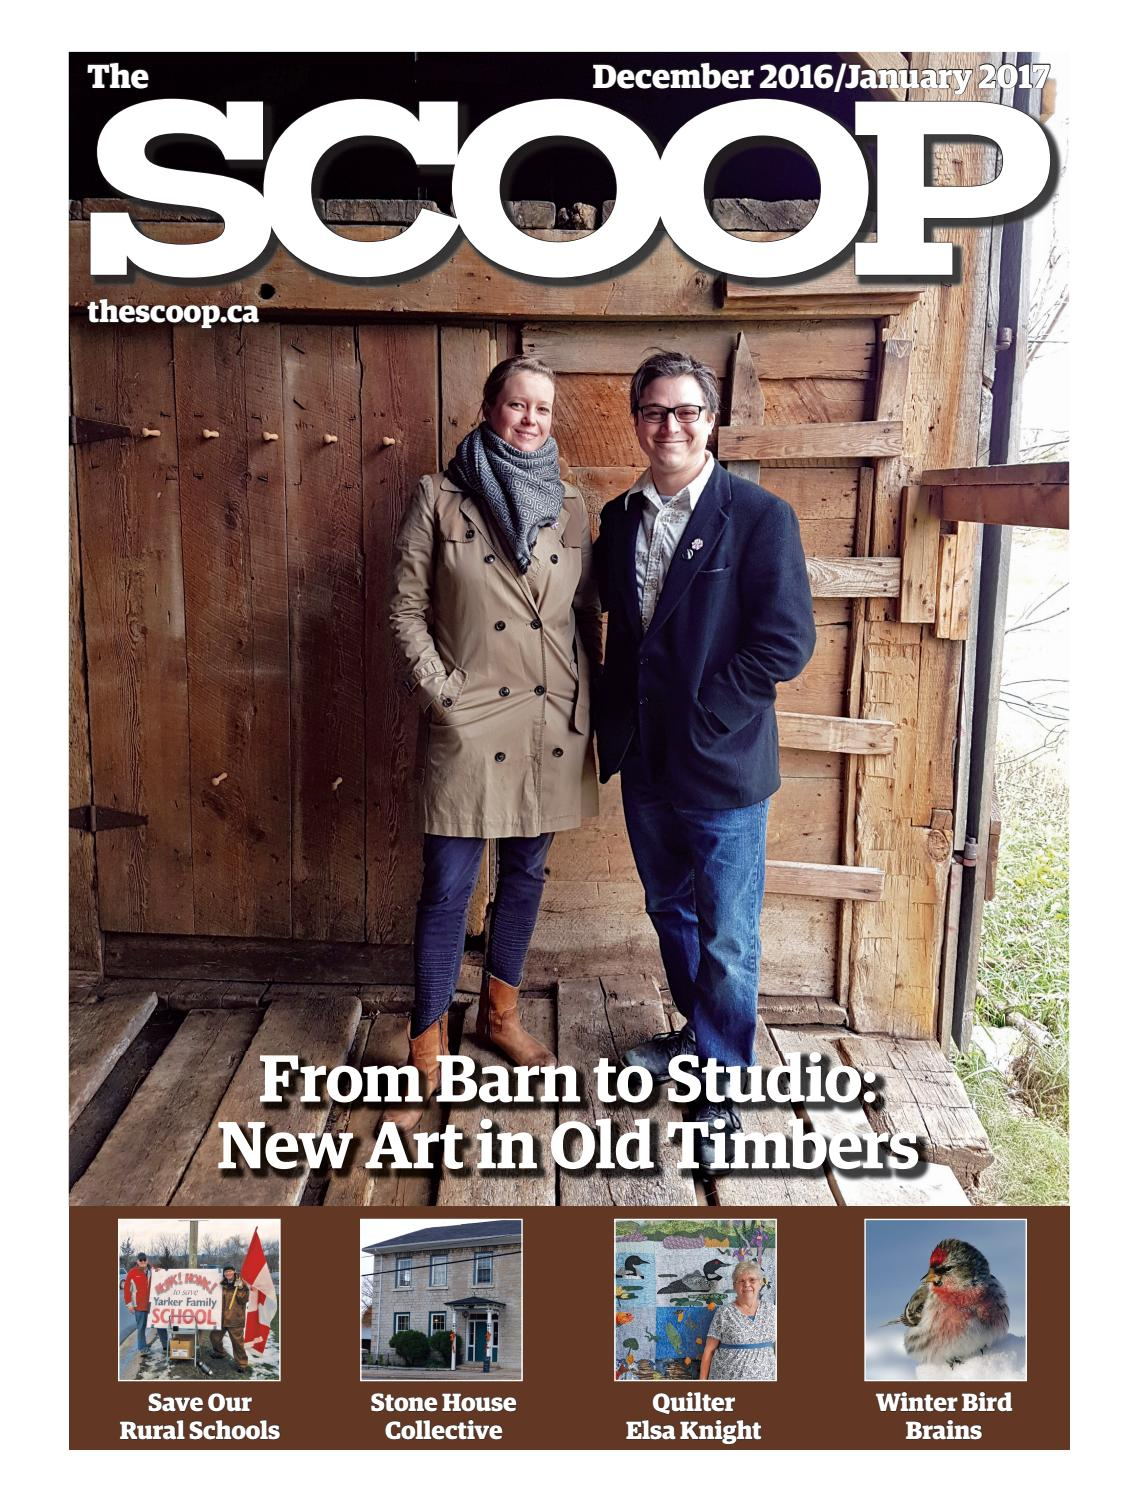 The scoop december 2016 january 2017 by the scoop issuu for Easons fish house